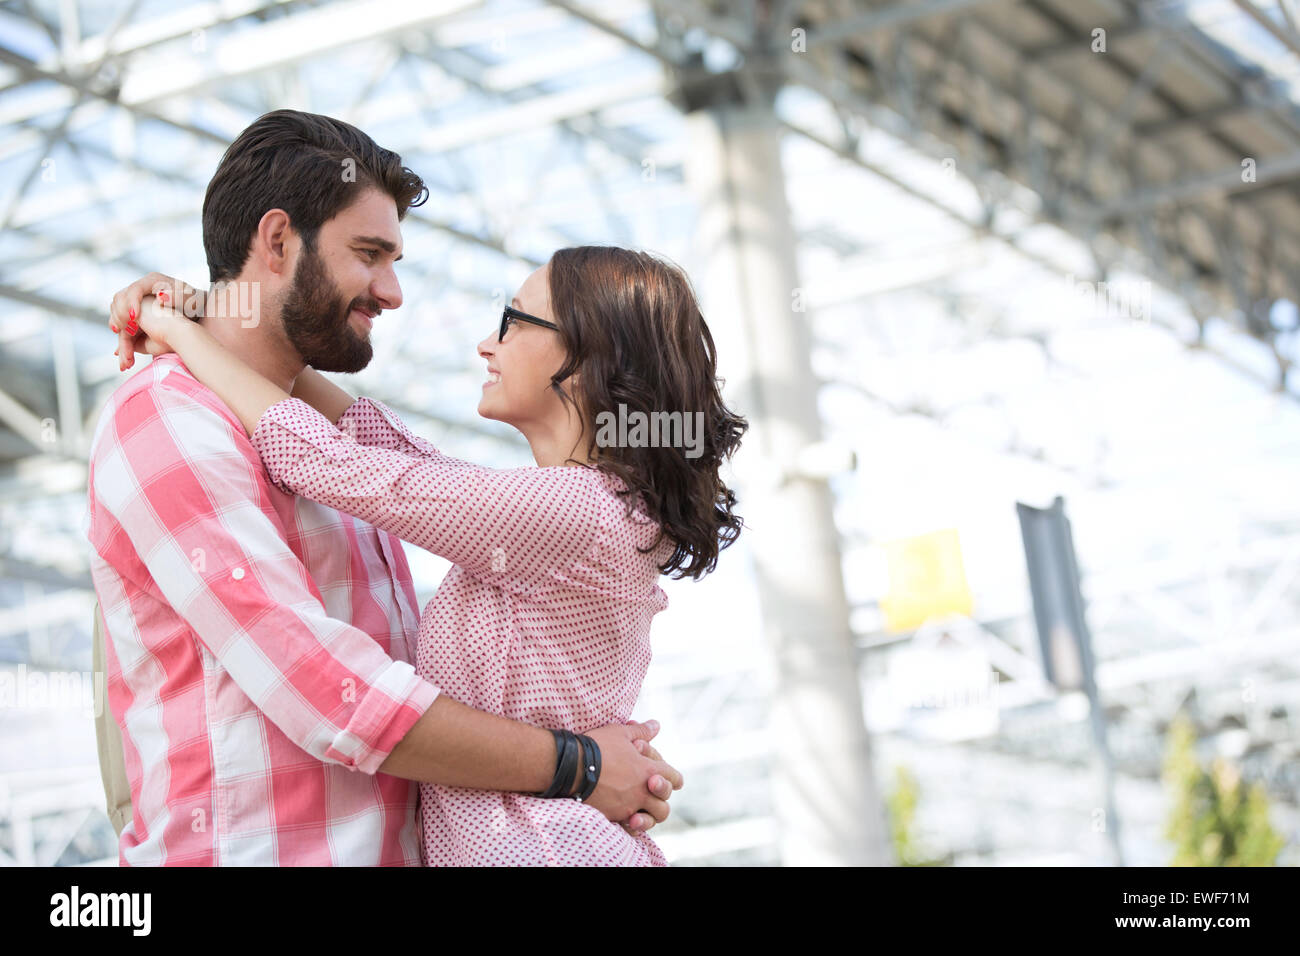 Loving couple looking at each other while embracing outside building - Stock Image